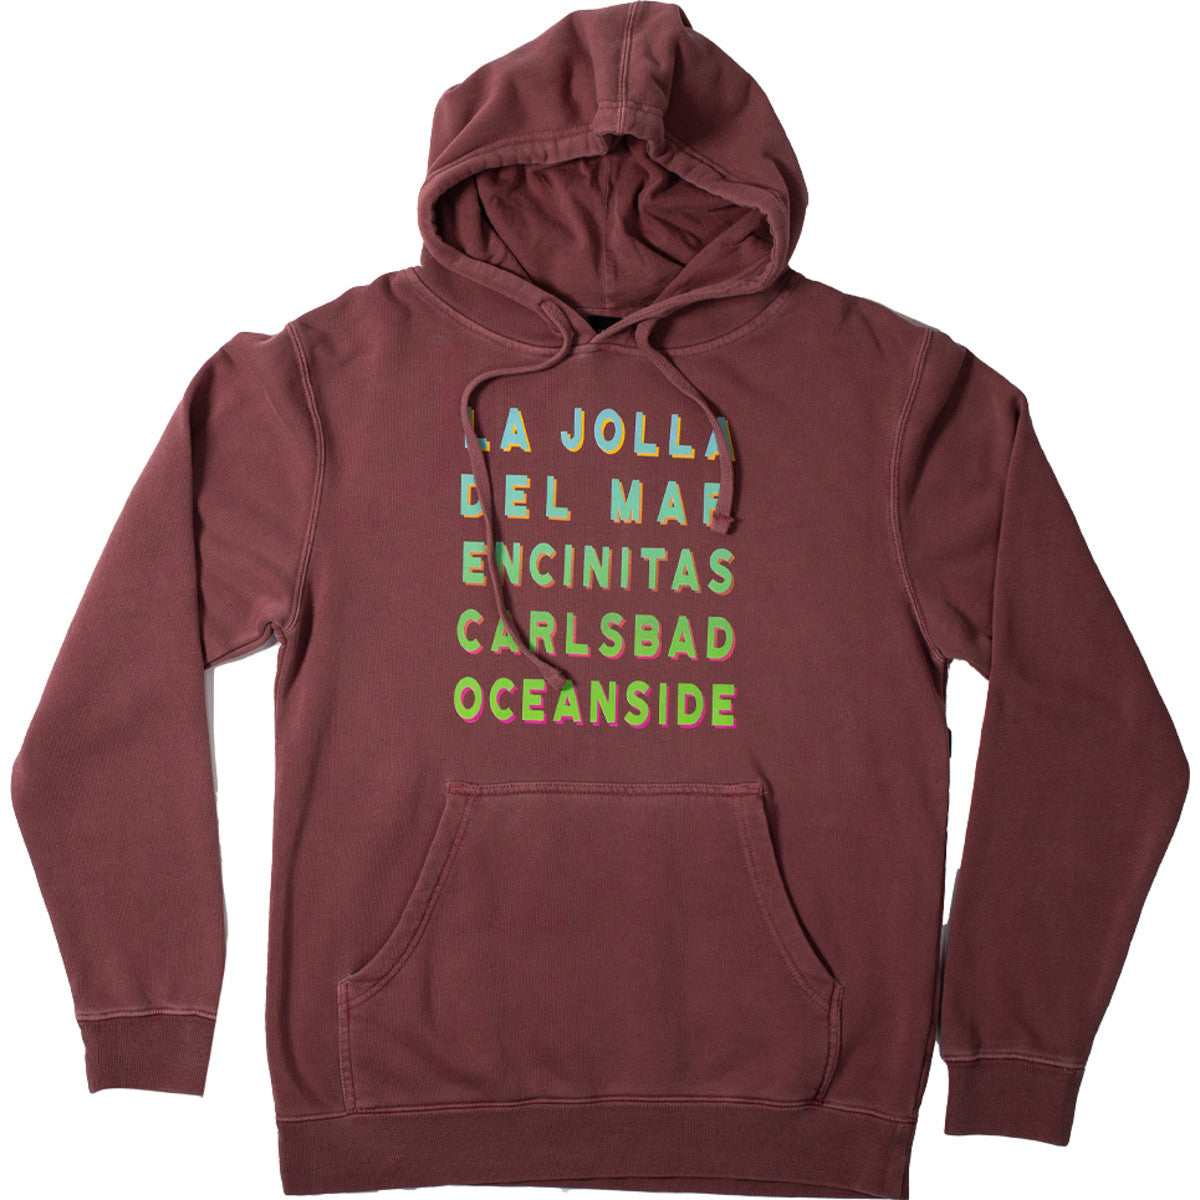 Sun Diego Beach Town Hooded Sweatshirt